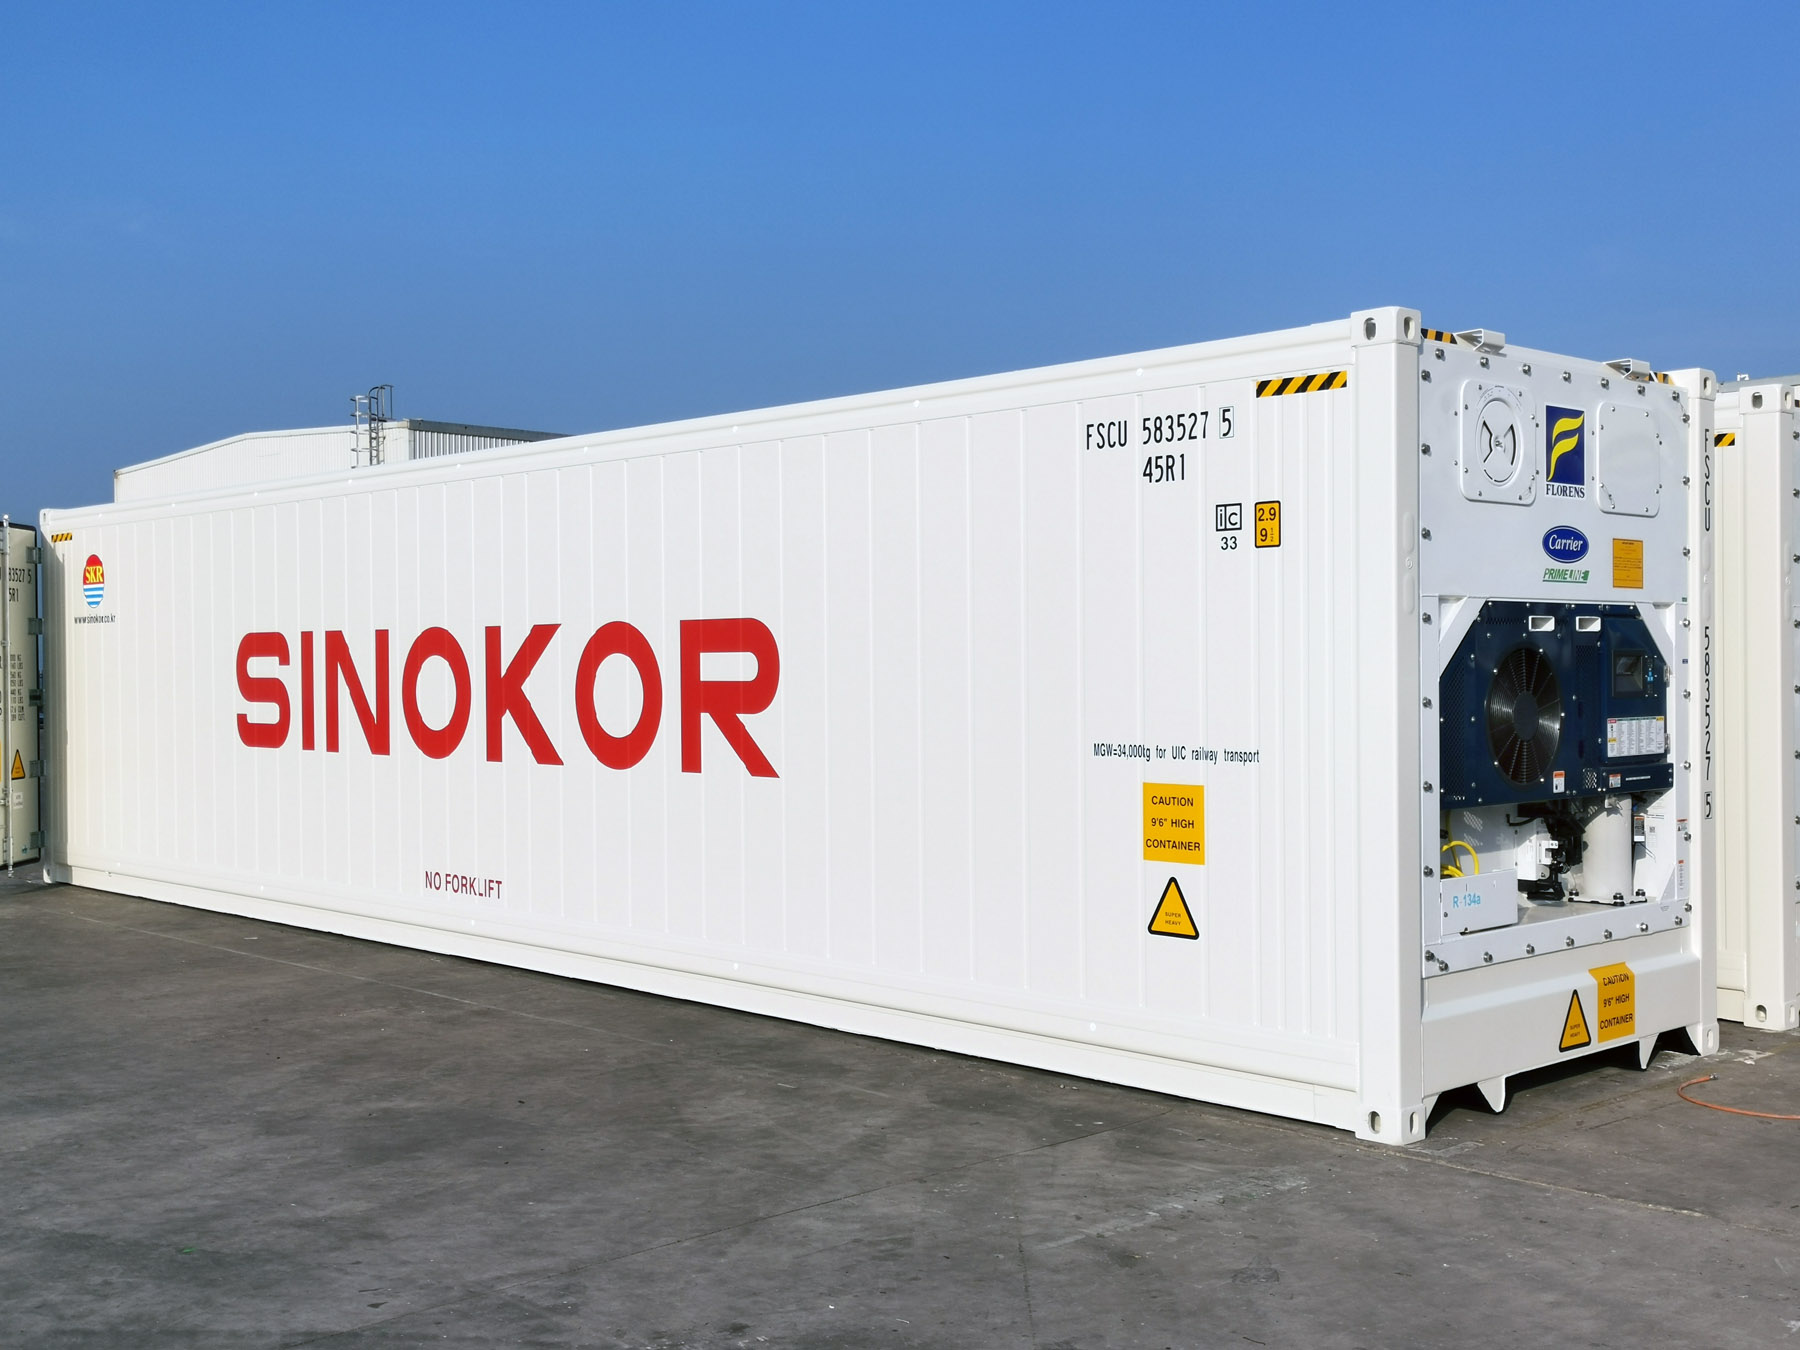 Sinokor adds 1,700 containers refrigerated by PrimeLINE units